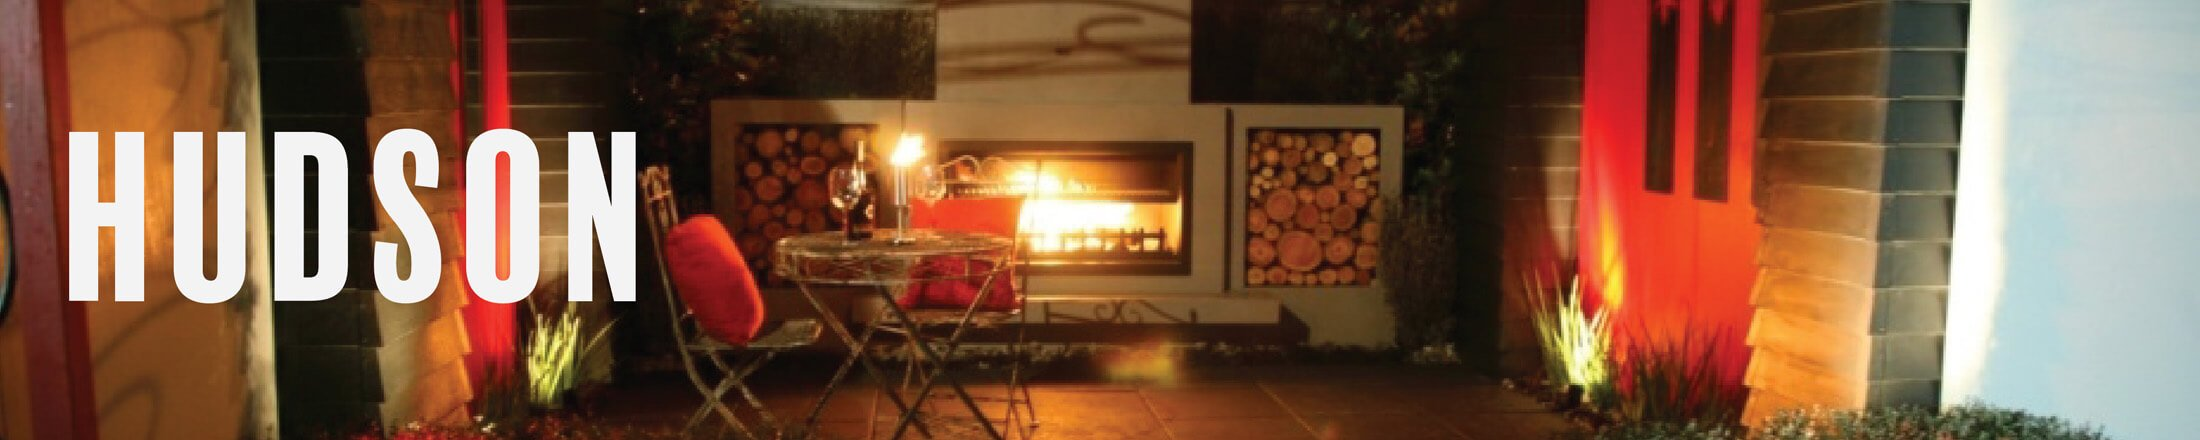 Hudson classic style outdoor fireplace perfect for your outdoor heating solutions